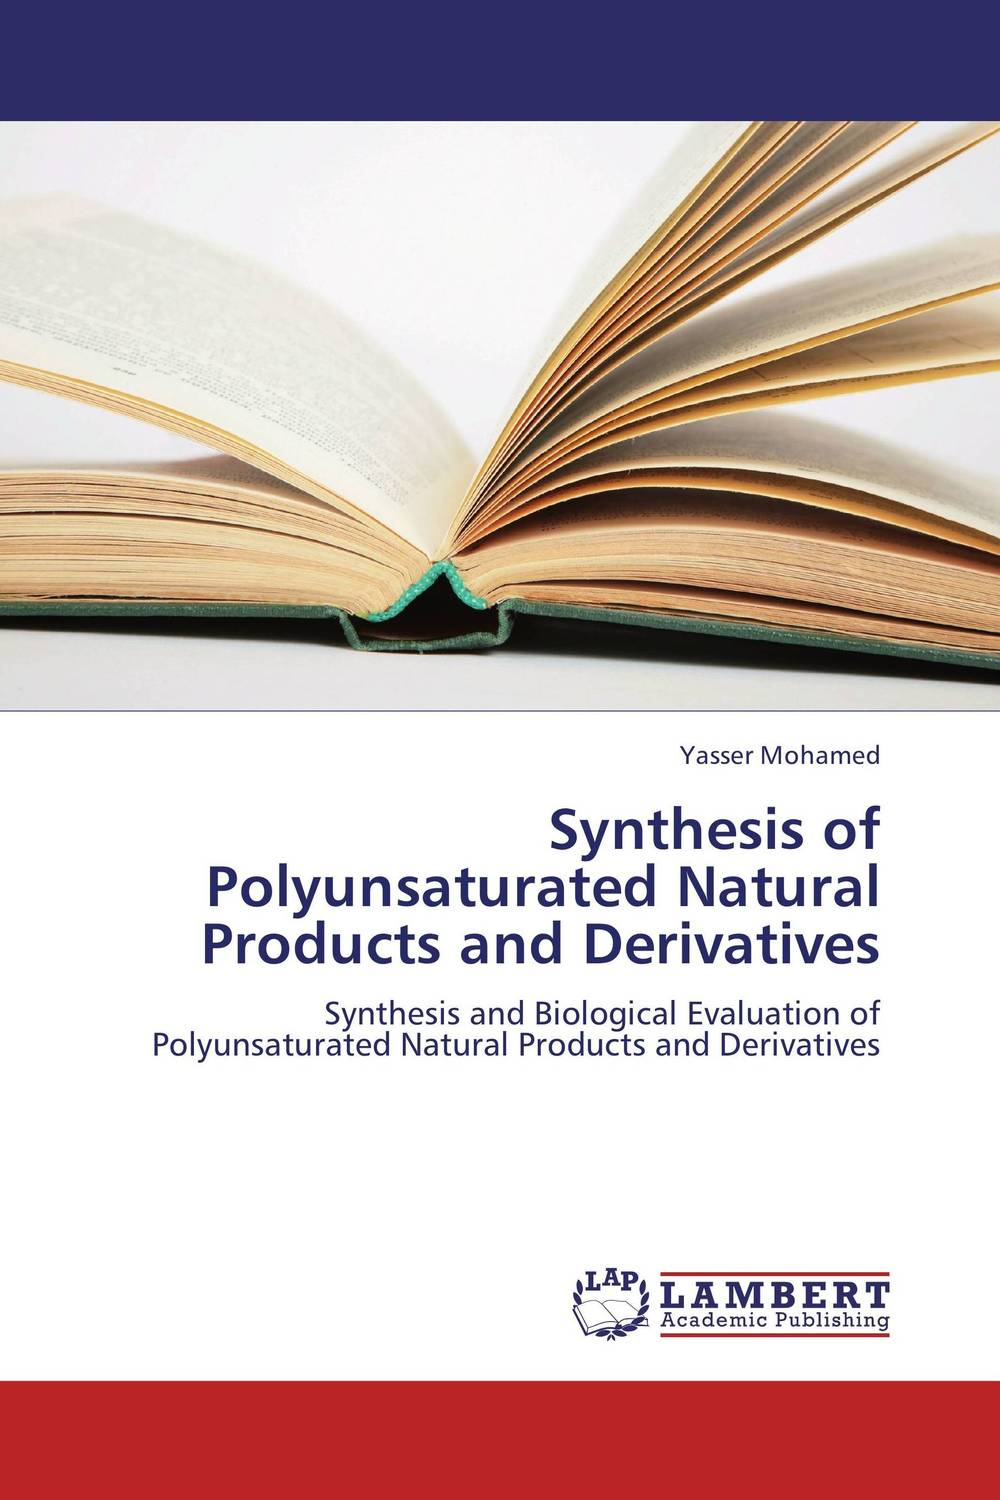 Synthesis of Polyunsaturated Natural Products and Derivatives modified pnas synthesis and interaction studies with dna